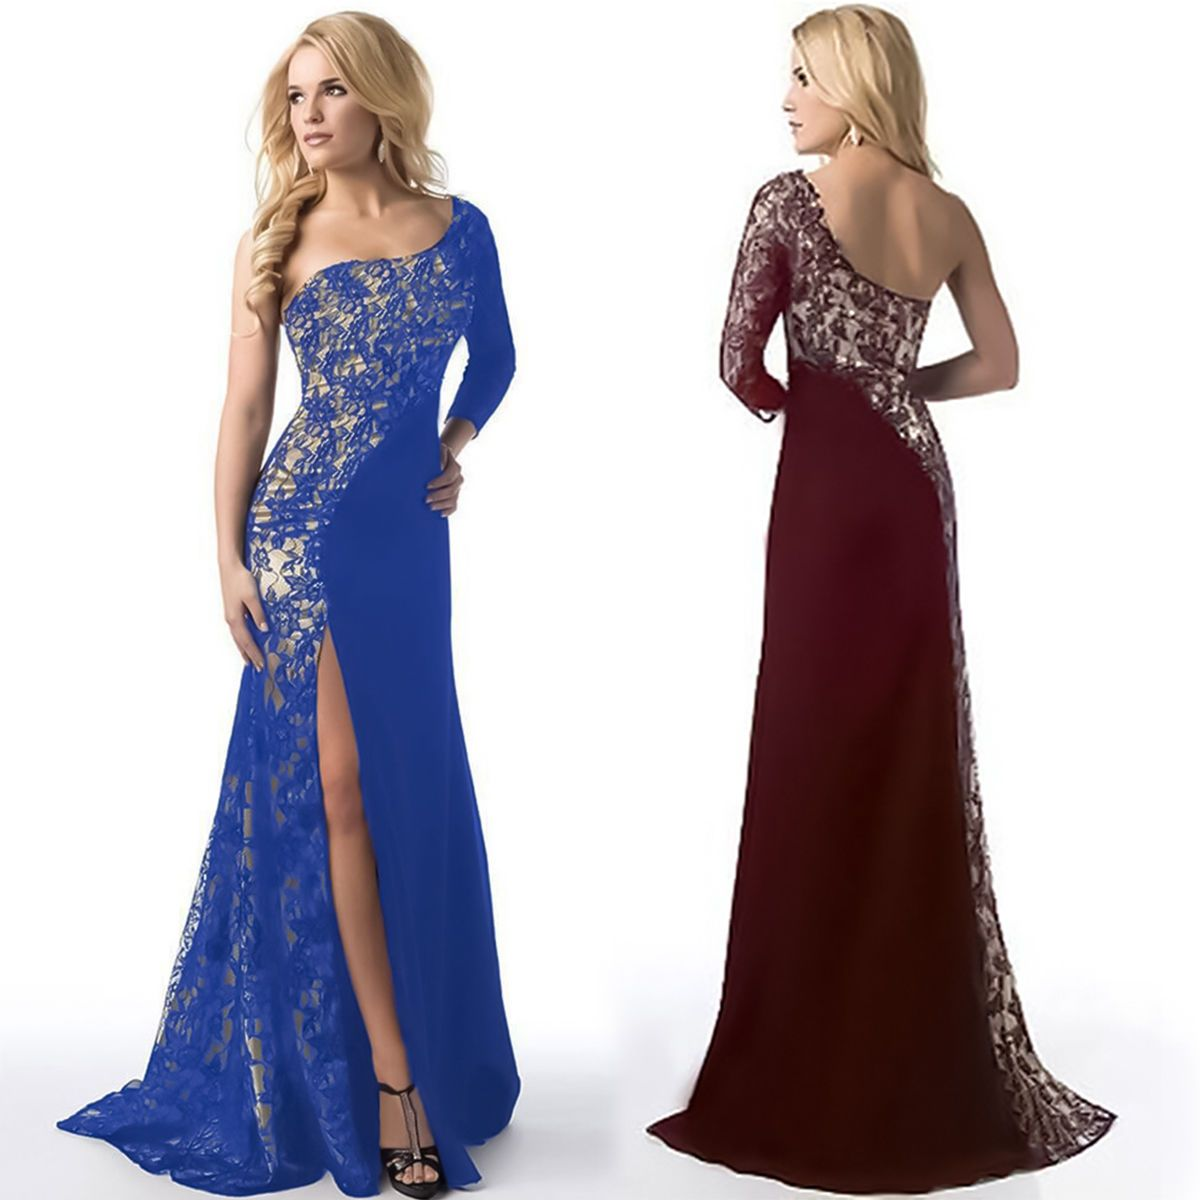 Awesome awesome women long evening party ball prom gown formal